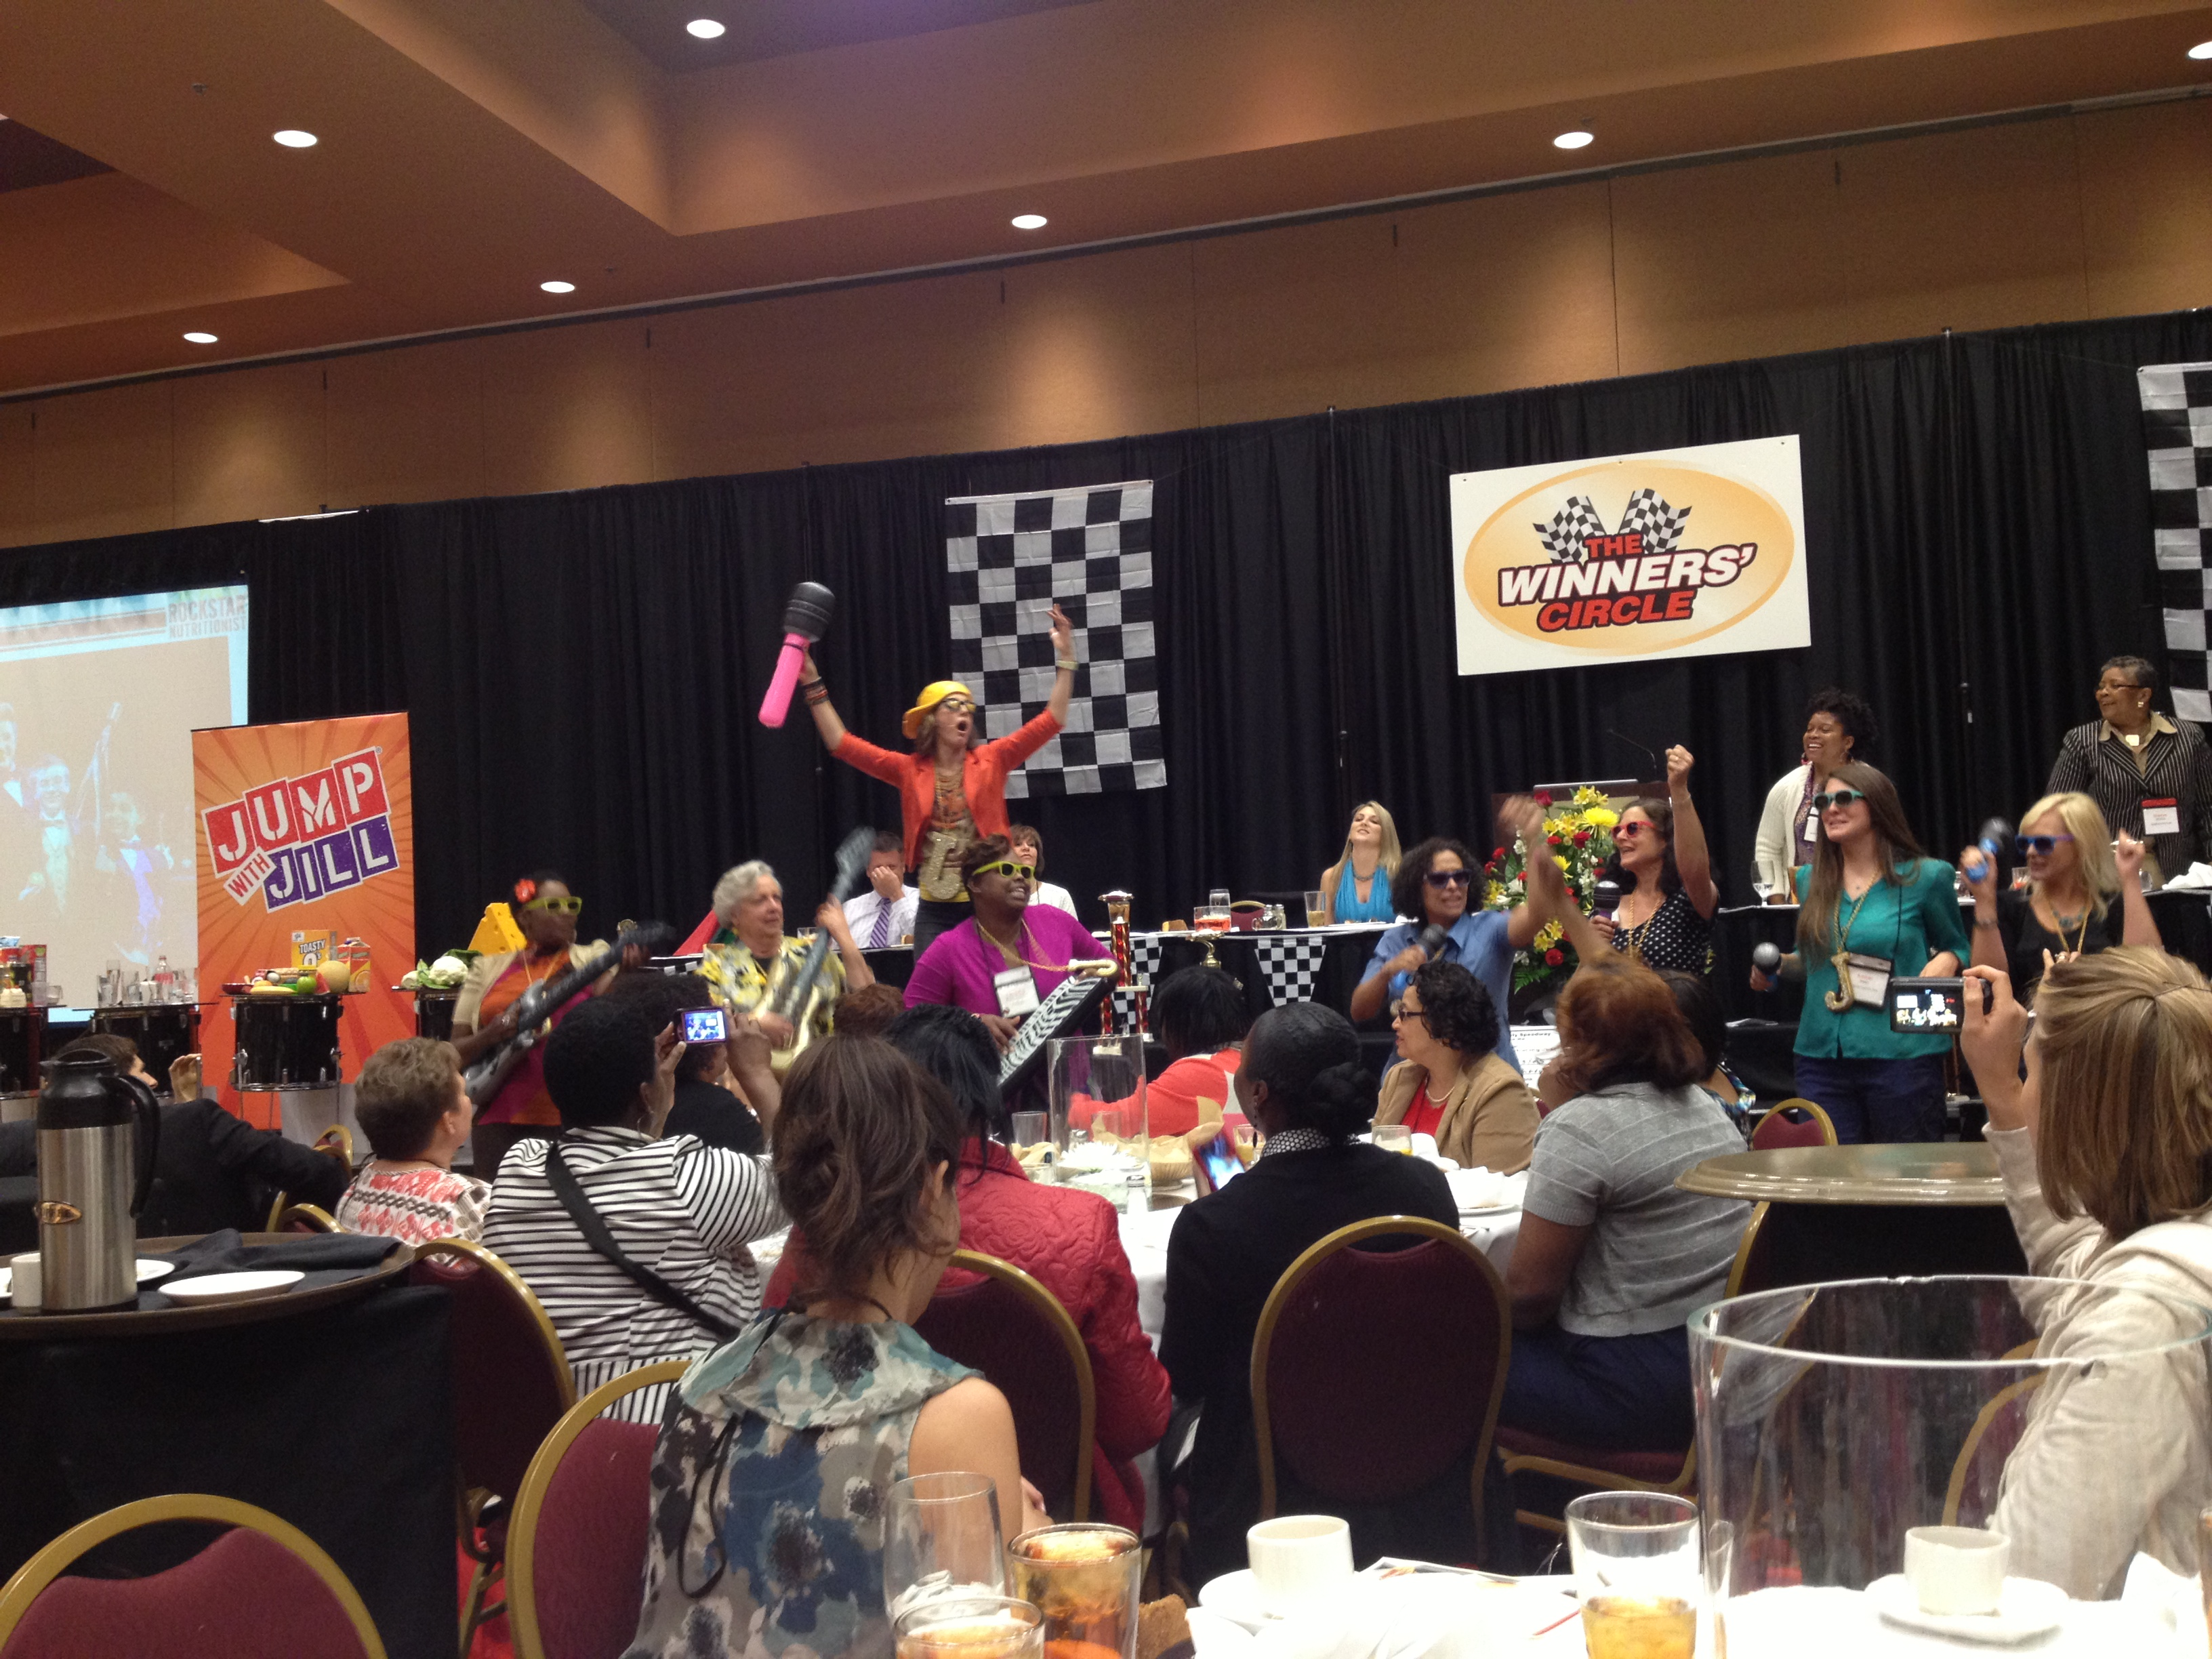 Opening Luncheon and Keynote speaker Jump with Jill, The Rockstar Nutritionist using a rock 'n roll approach to communicating a healthy message.